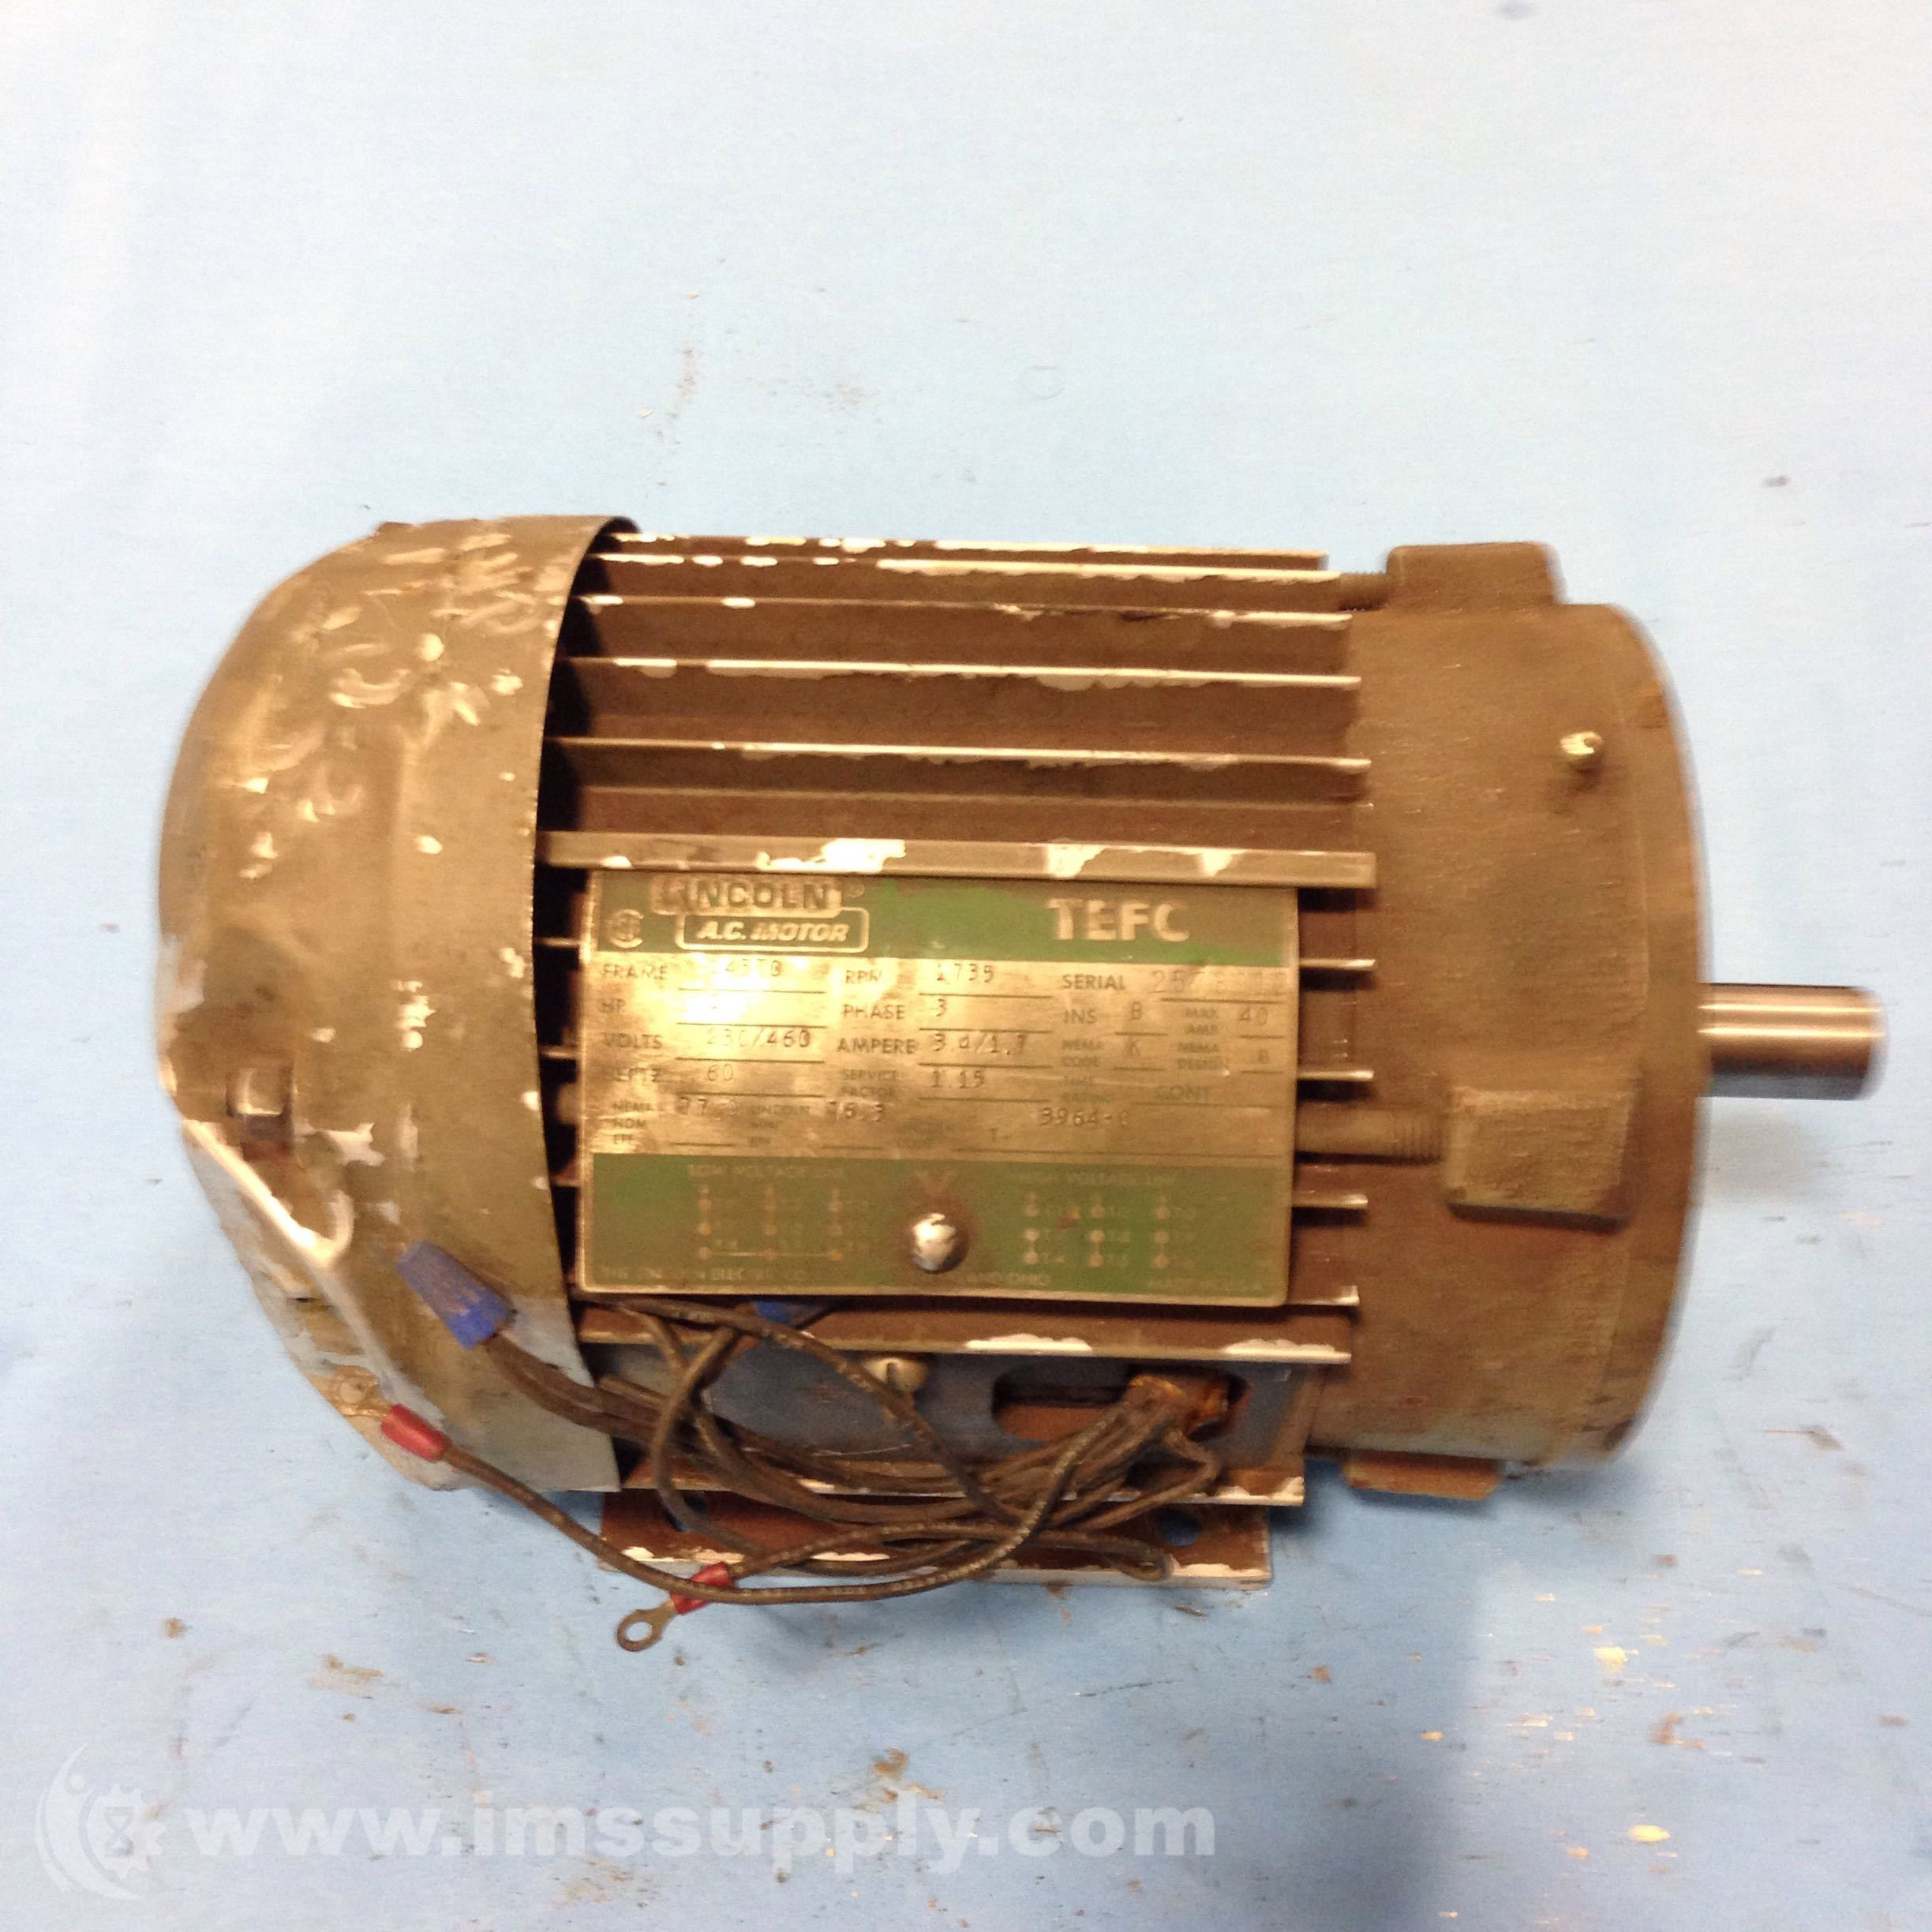 Lincoln motors 3964 c electric motor ims supply for Lincoln electric motors catalog